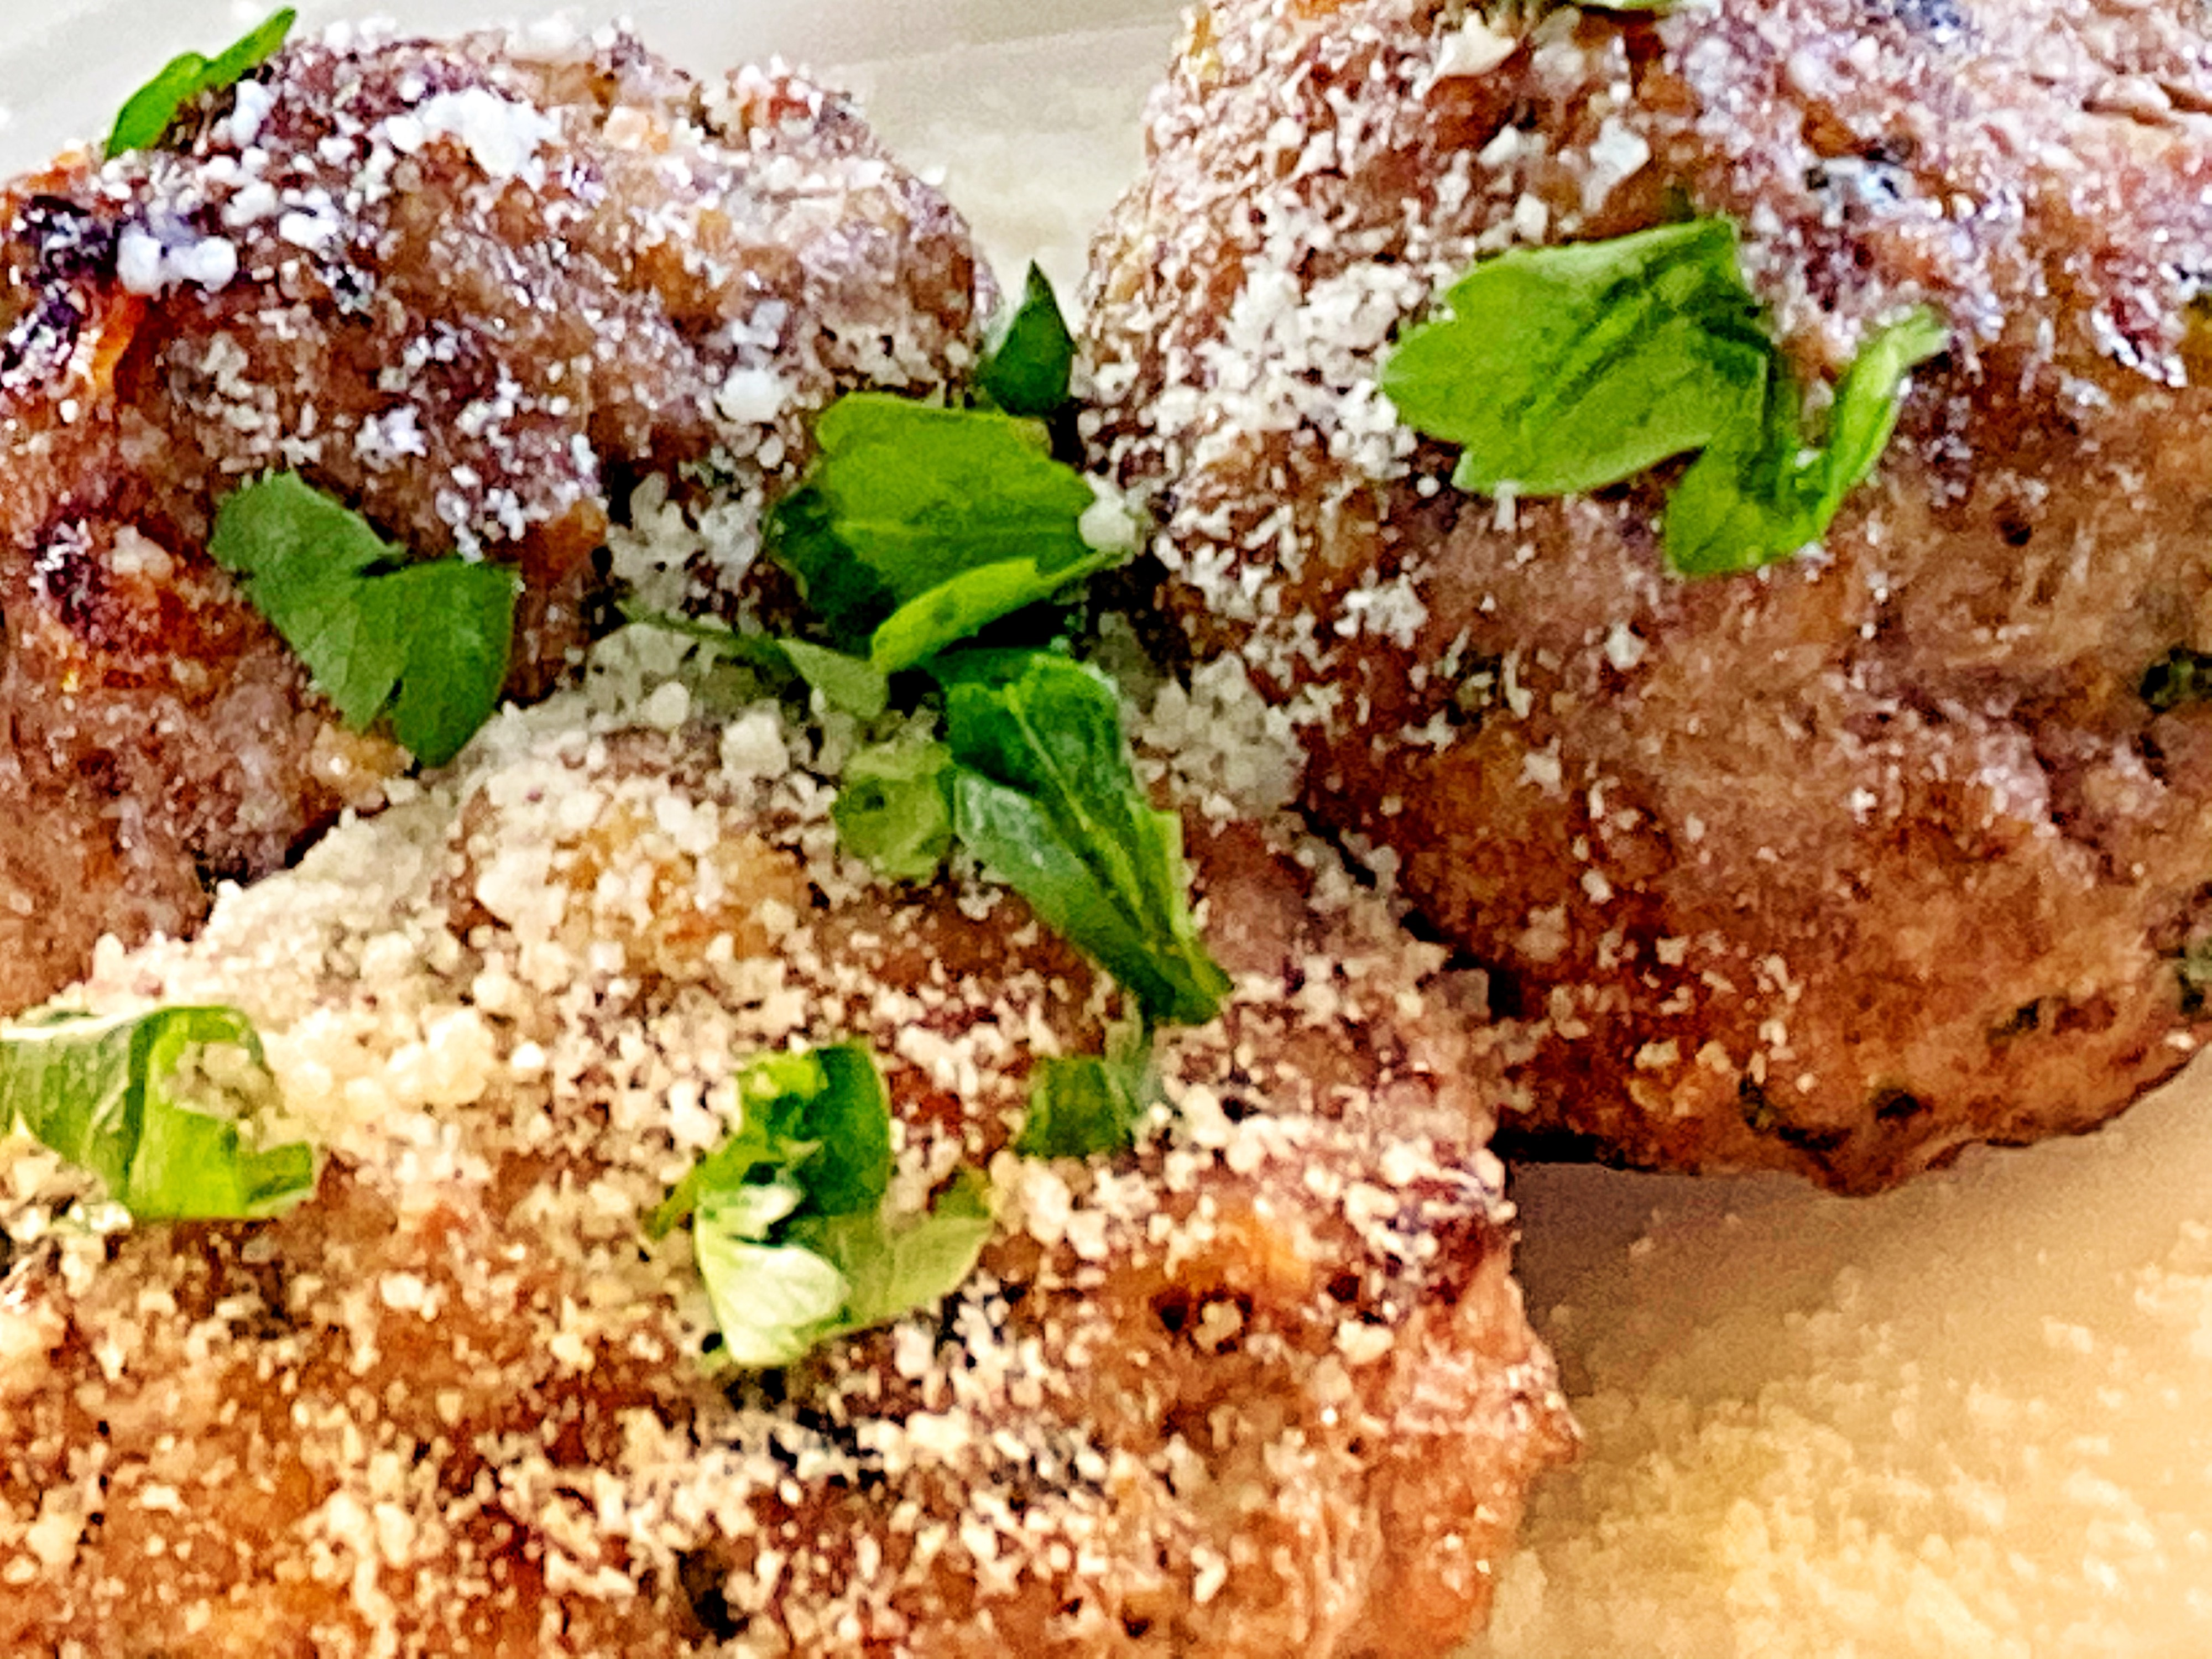 3 meatballs, browned on the outside and sprinkled with parmesan cheese and parsley.